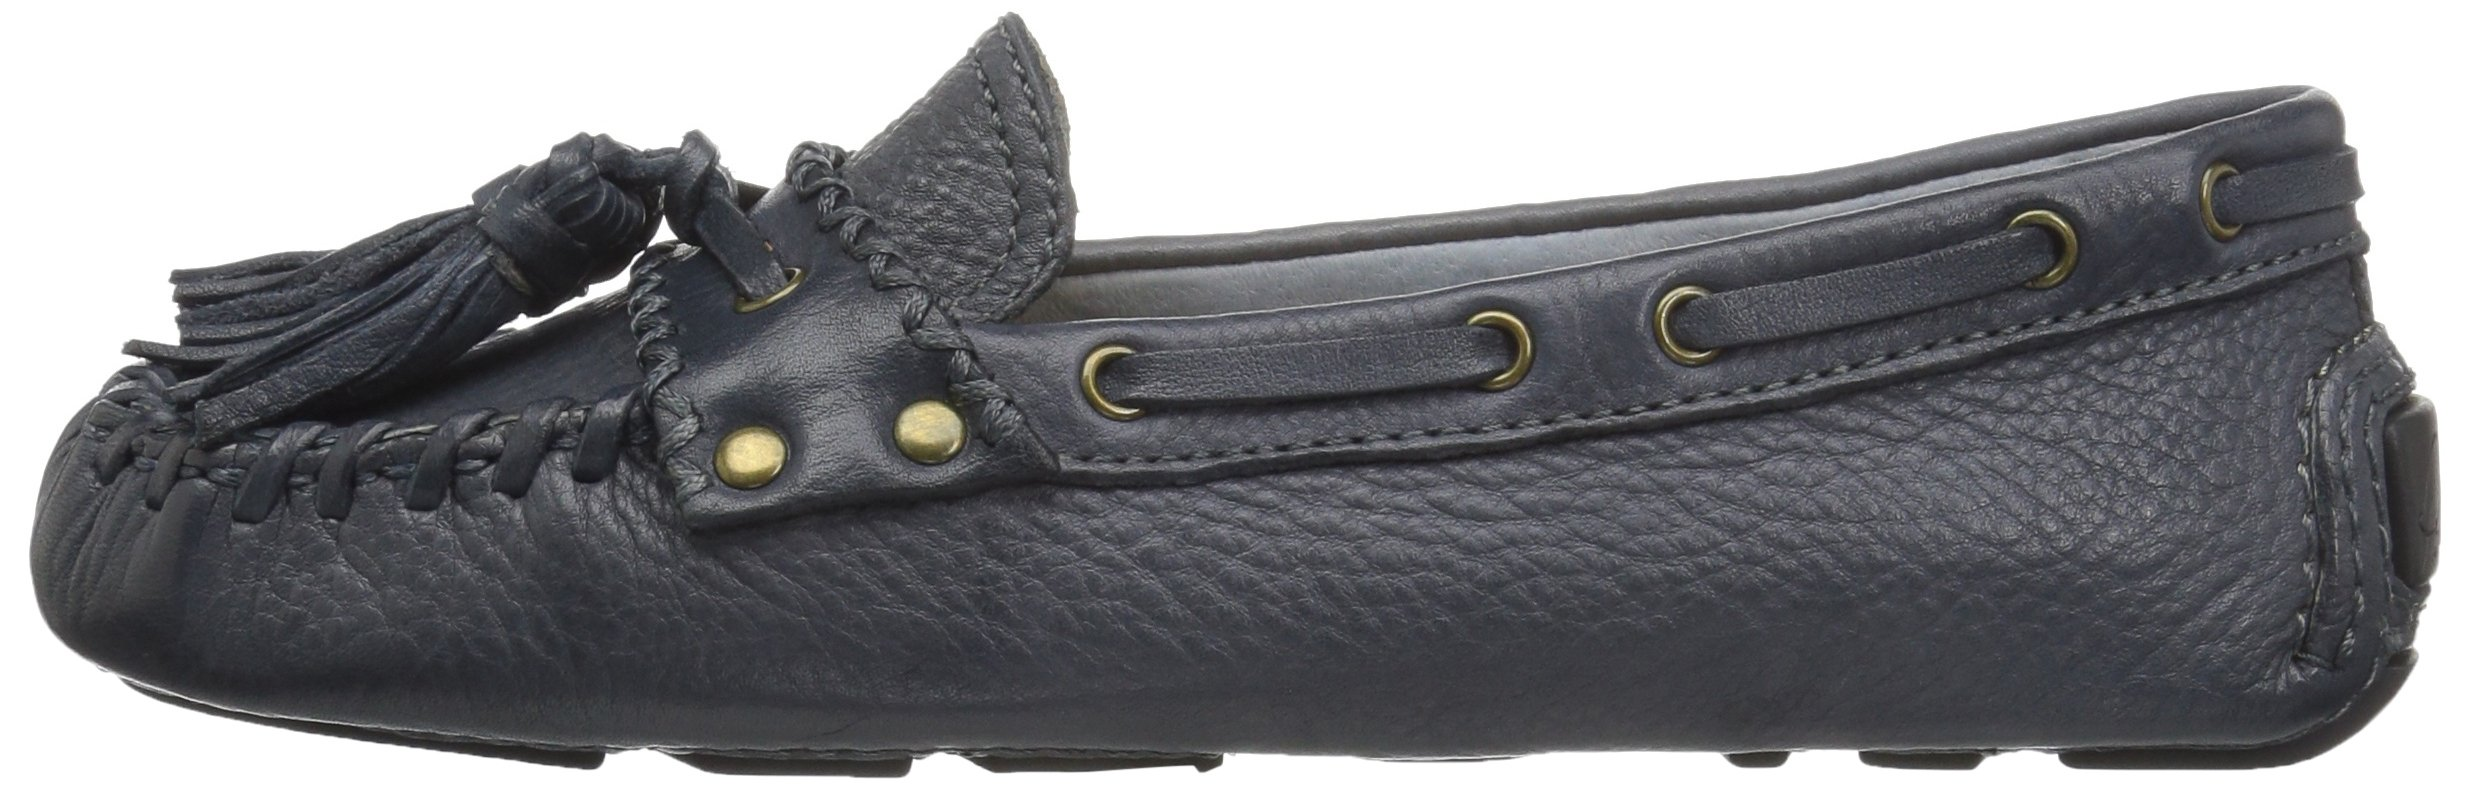 Patricia Nash Women's Domenica Driving Style Loafer, Oxford Blue, 37.5 B US by Patricia Nash (Image #5)